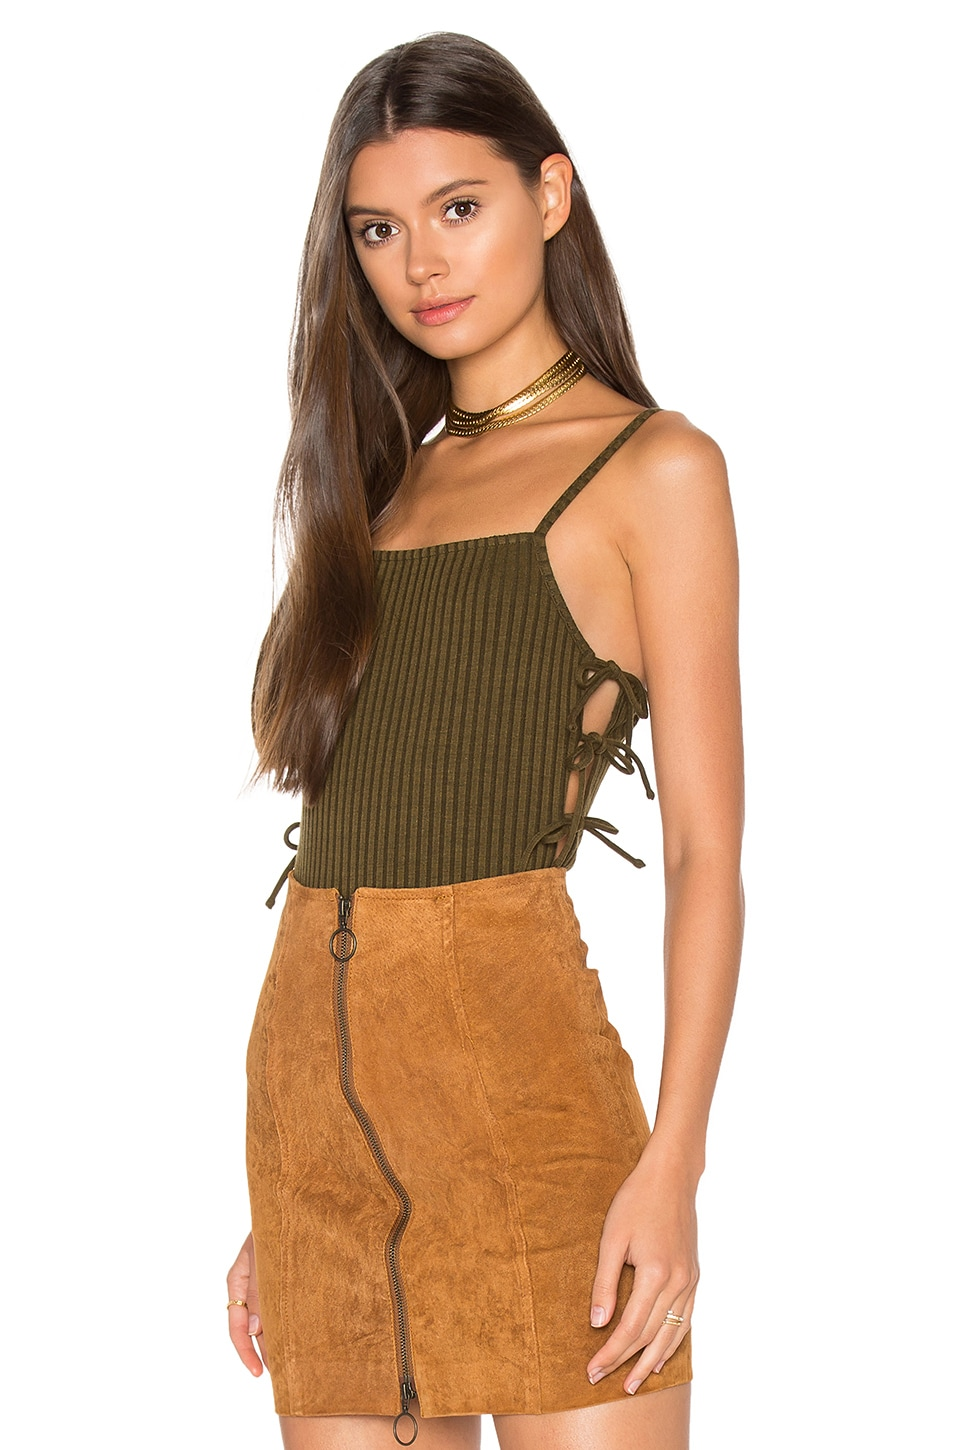 Privacy Please Arden Bodysuit in Green